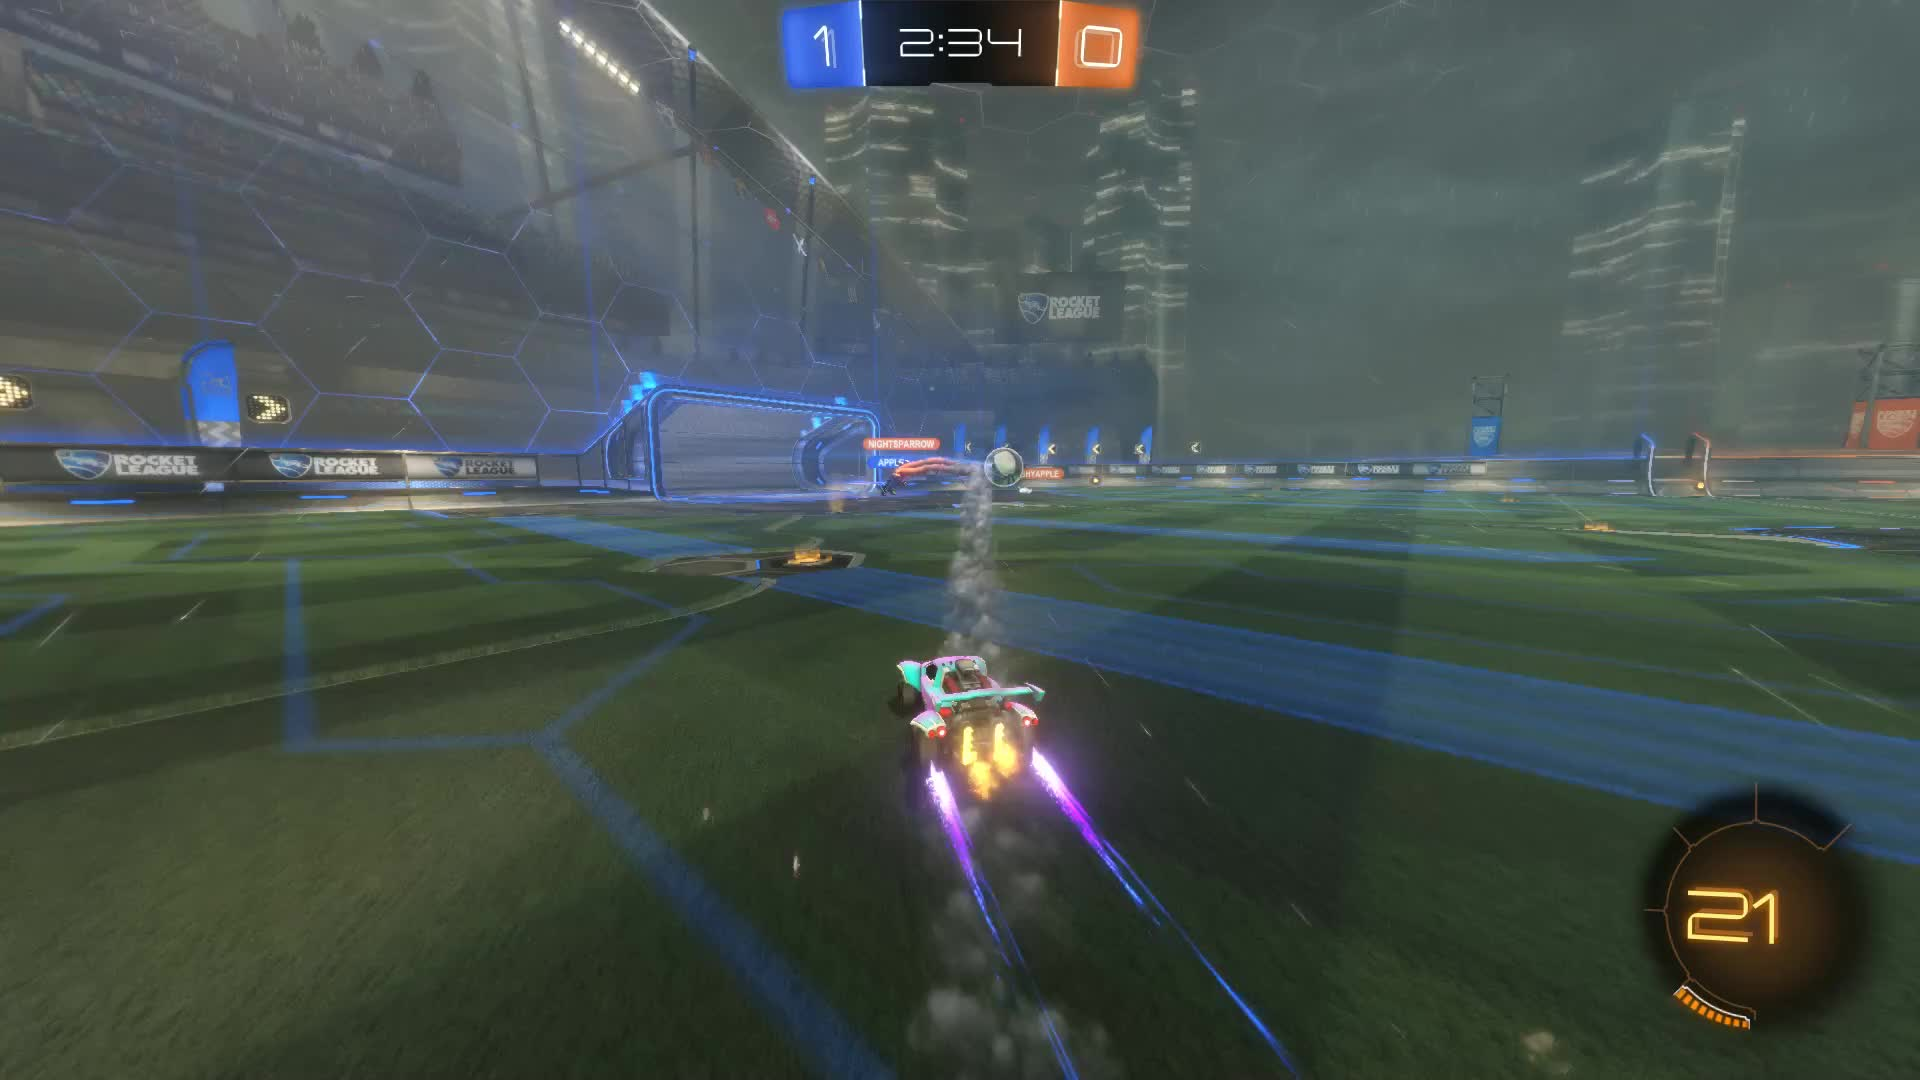 Gif Your Game, GifYourGame, Goal, MythVx, Rocket League, RocketLeague, Goal 2: MythVx GIFs